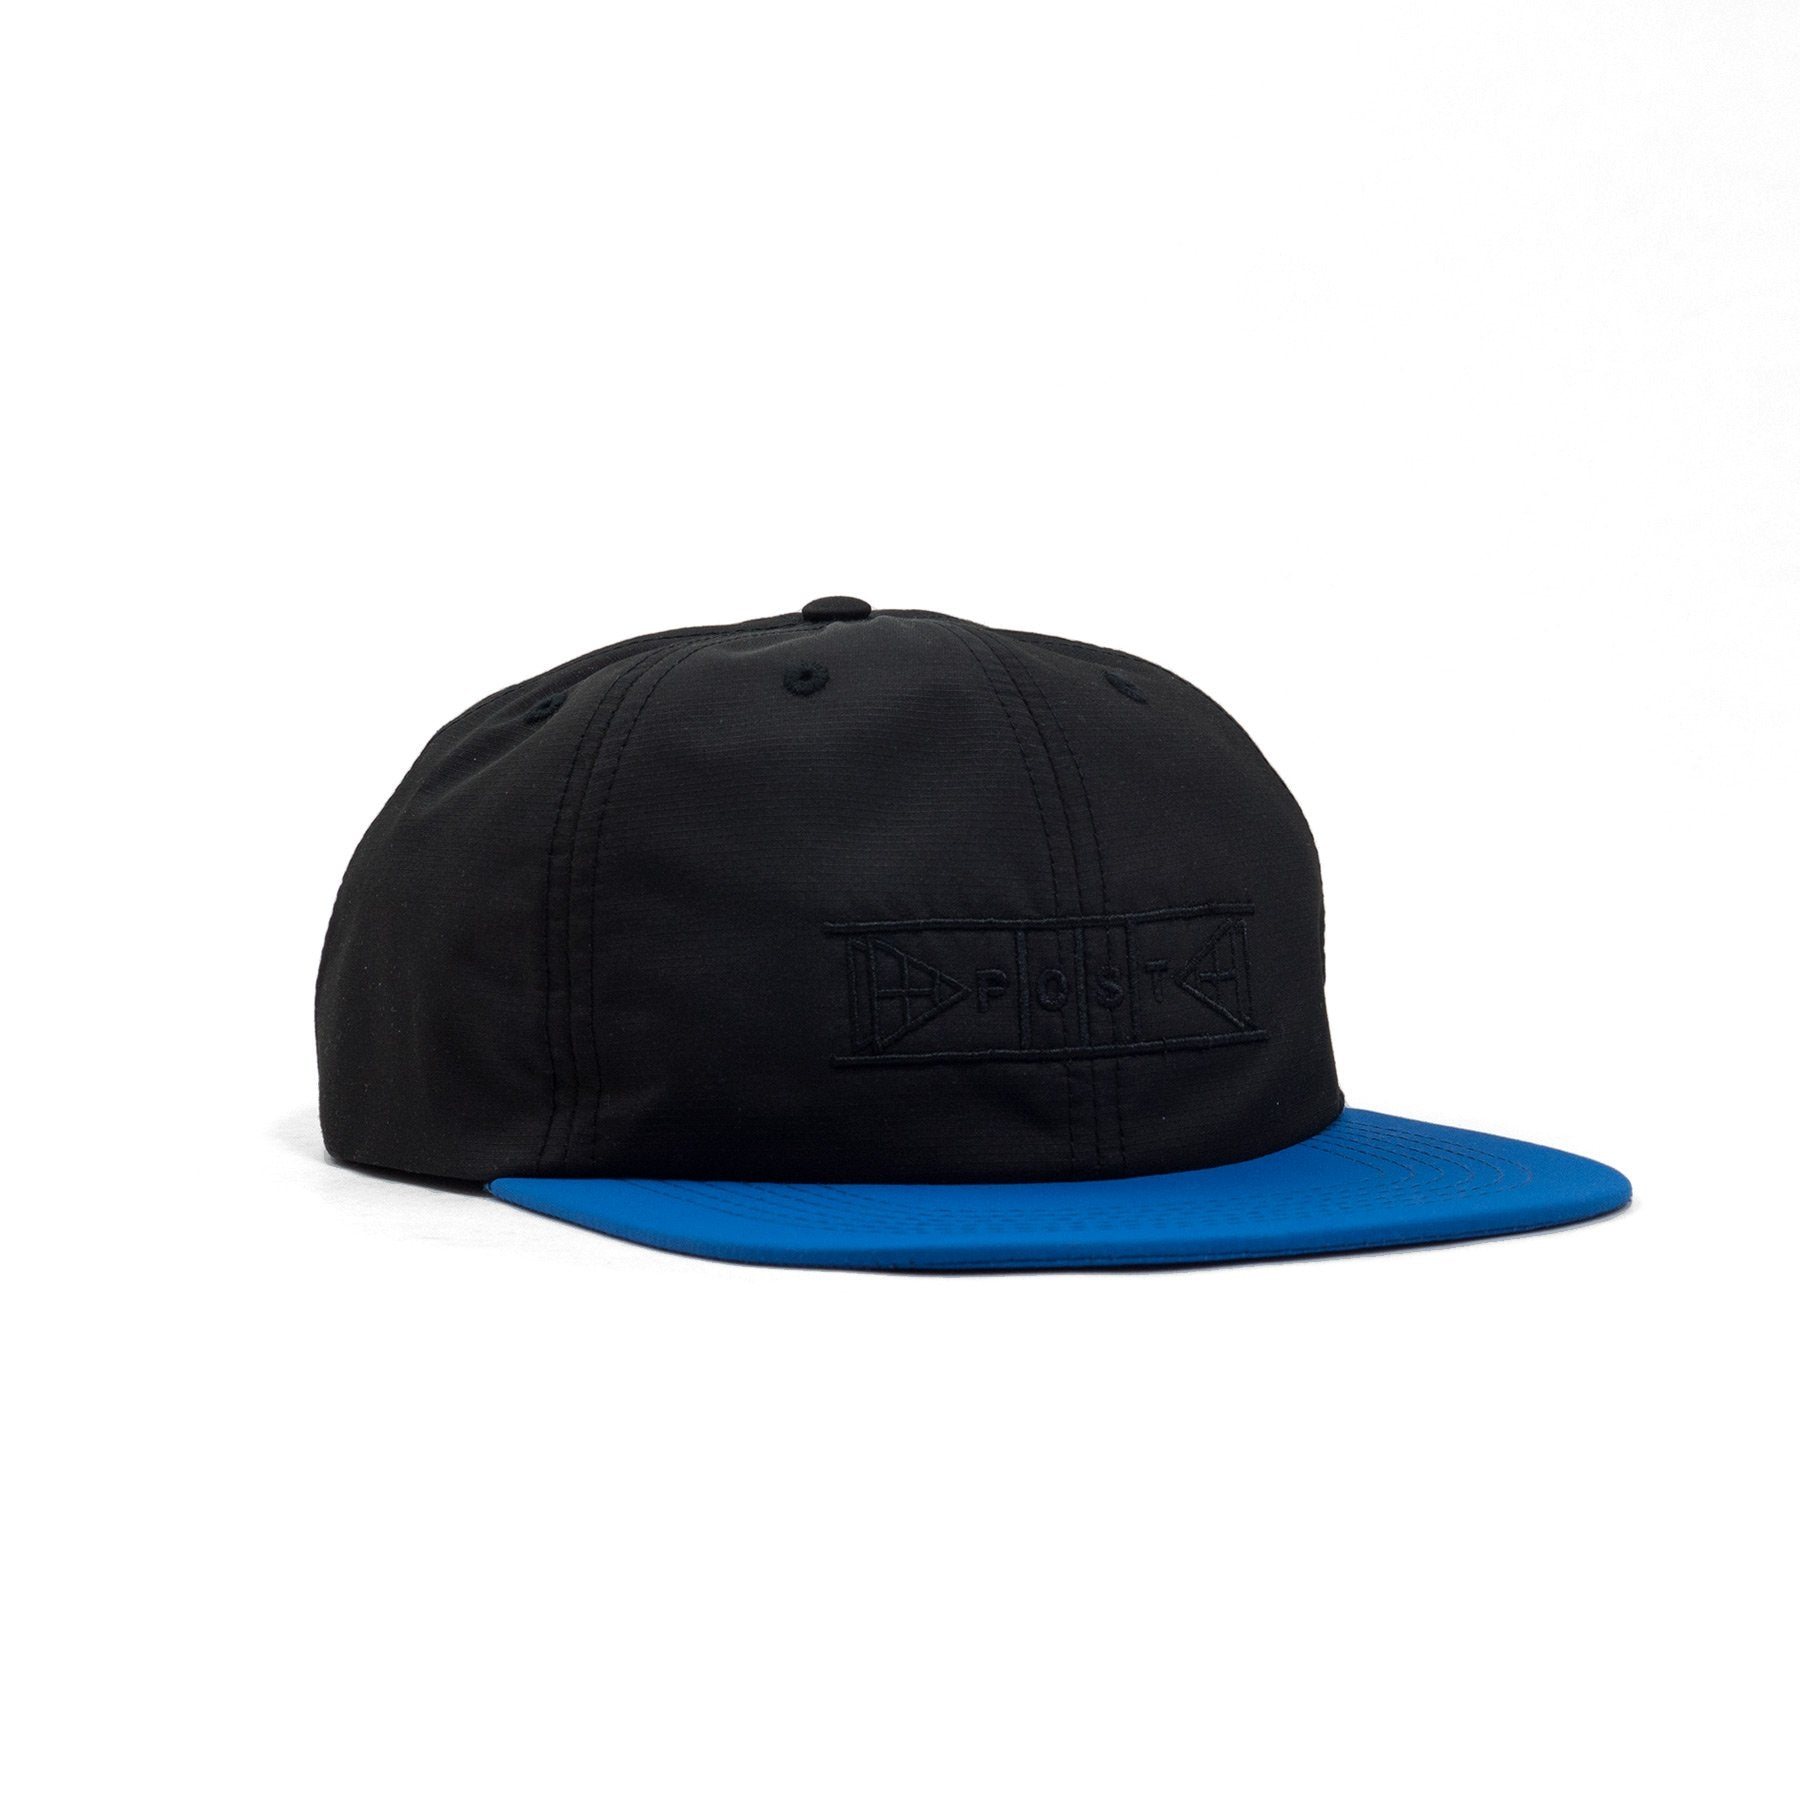 Post Shuffleboard Cap Black/Blue